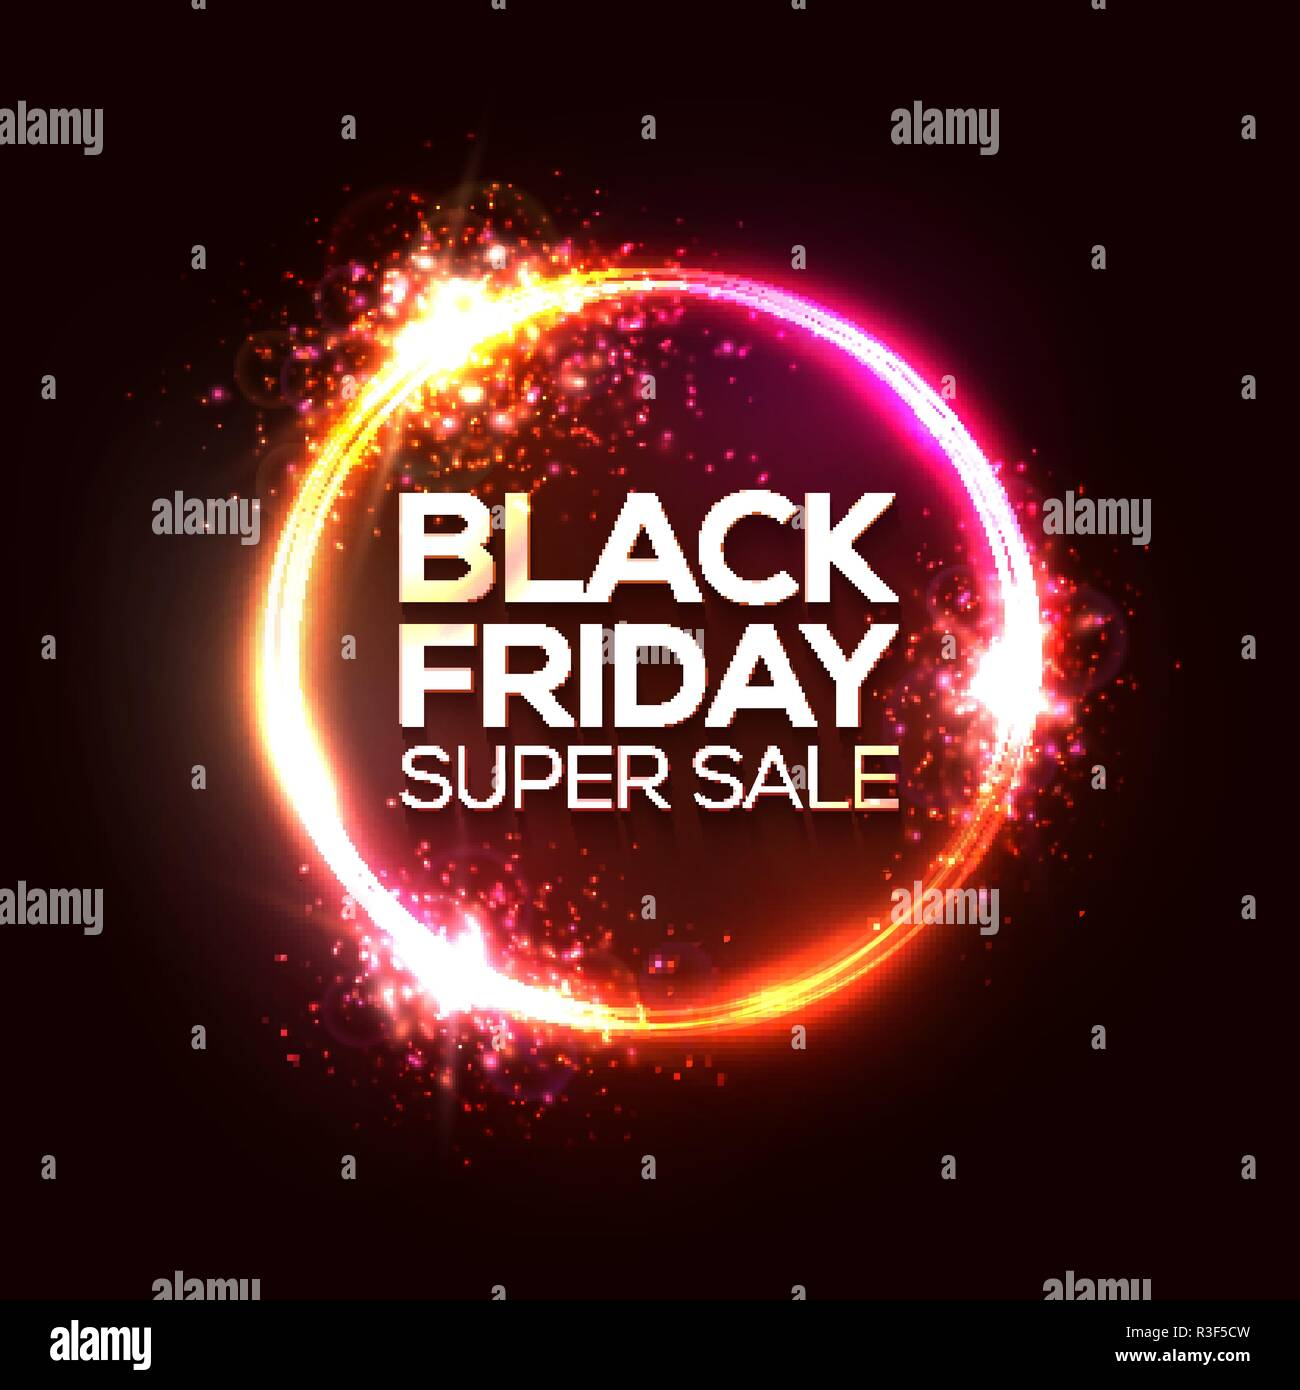 94af0c2aa9 Black Friday sale banner or flyer in neon circle logo. Electrical  technology promotion abstract background. Black Friday design. Pink red  round tube with ...